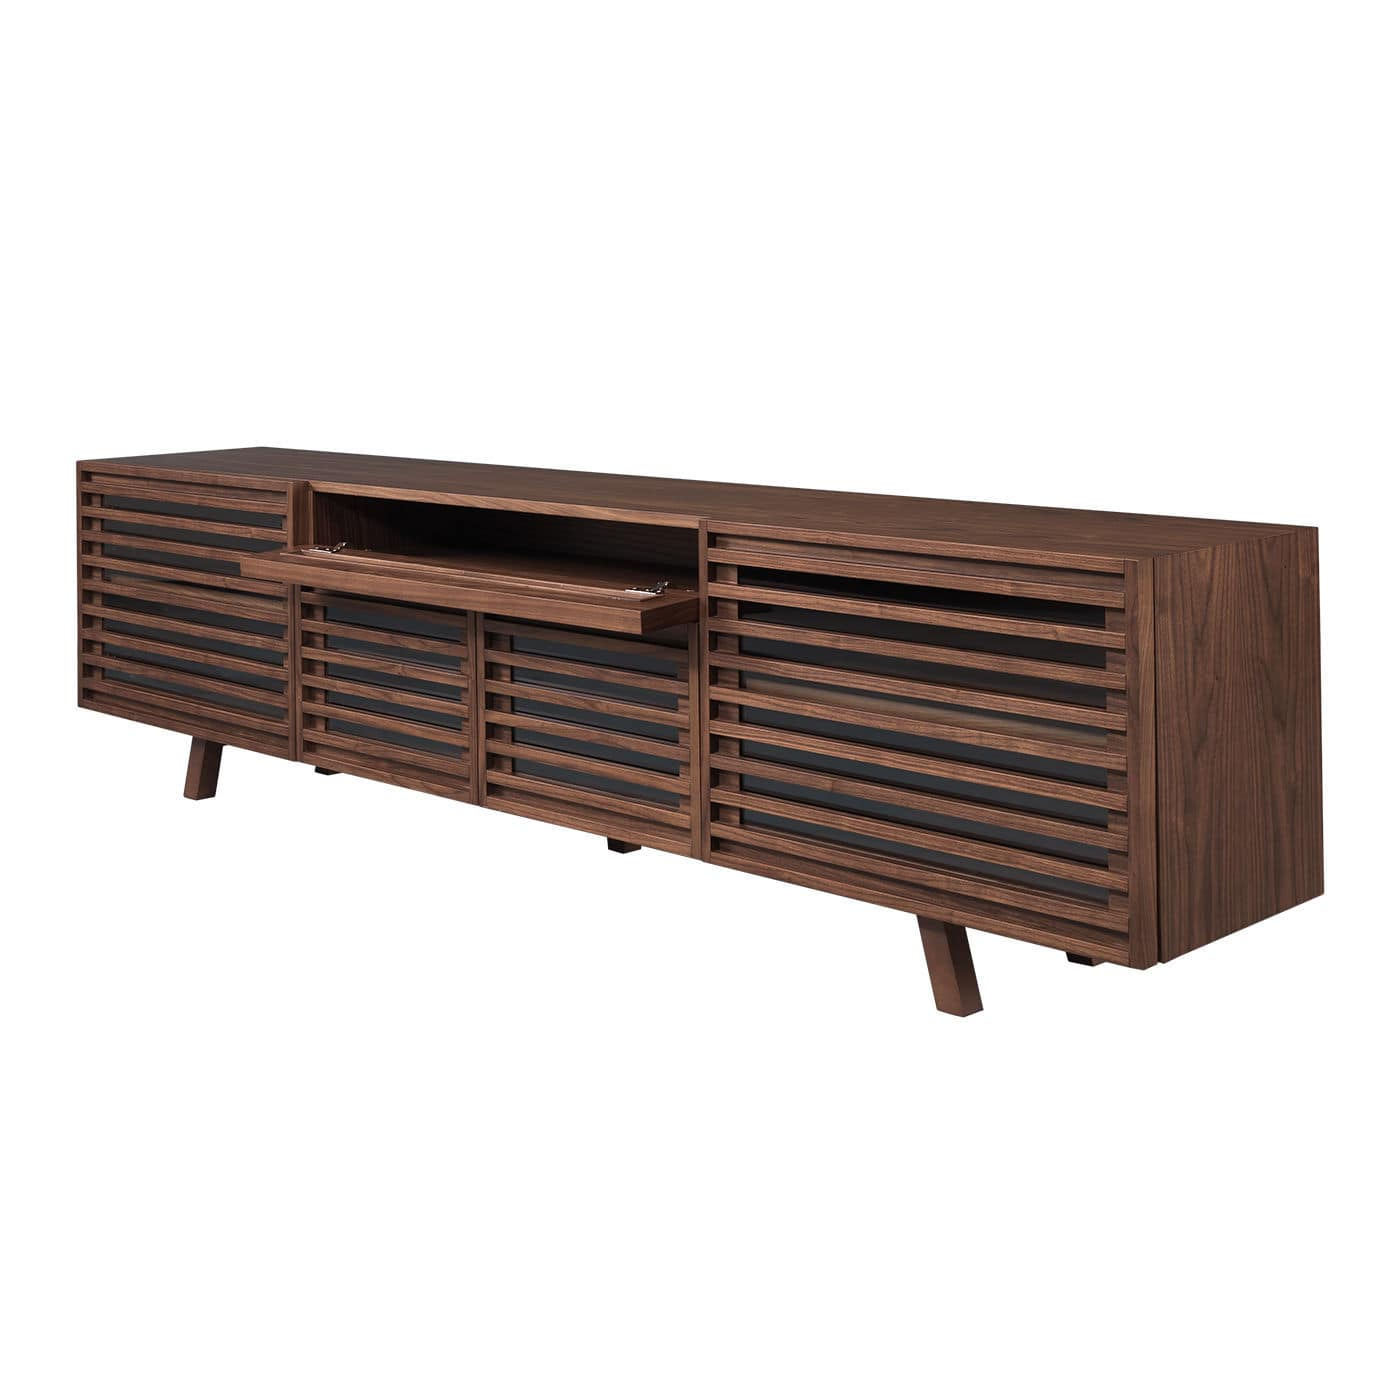 Retro Tv Cabinet Contemporary Tv Cabinet Lowboard Custom For Hotel Rooms